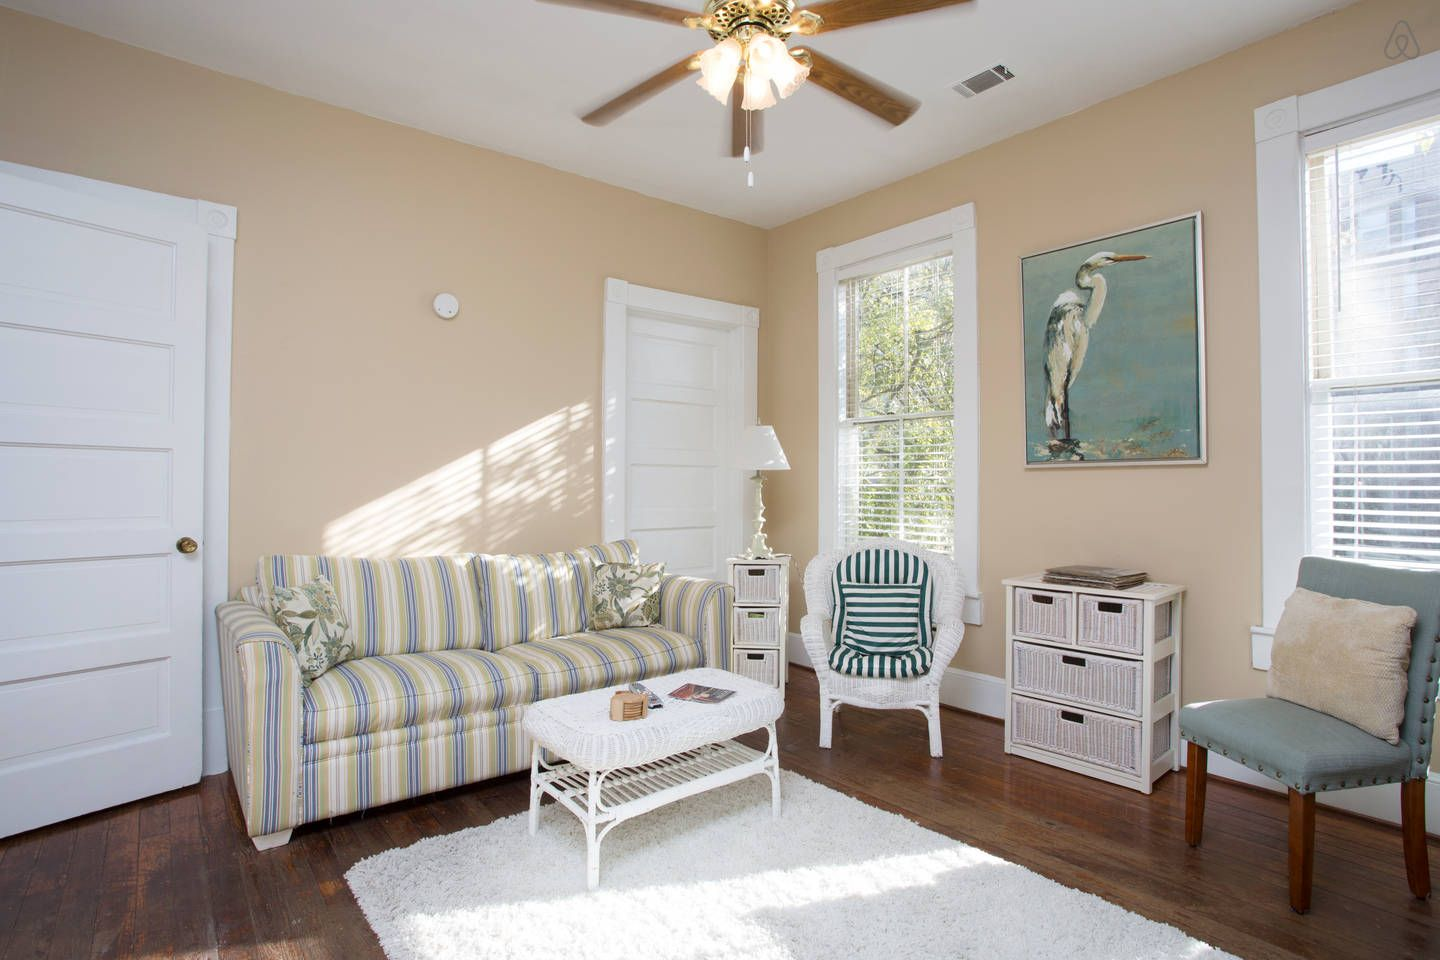 Forsyth Park 2 Story Olive Rental In Savannah Apartments For Rent 1st Apartment Home